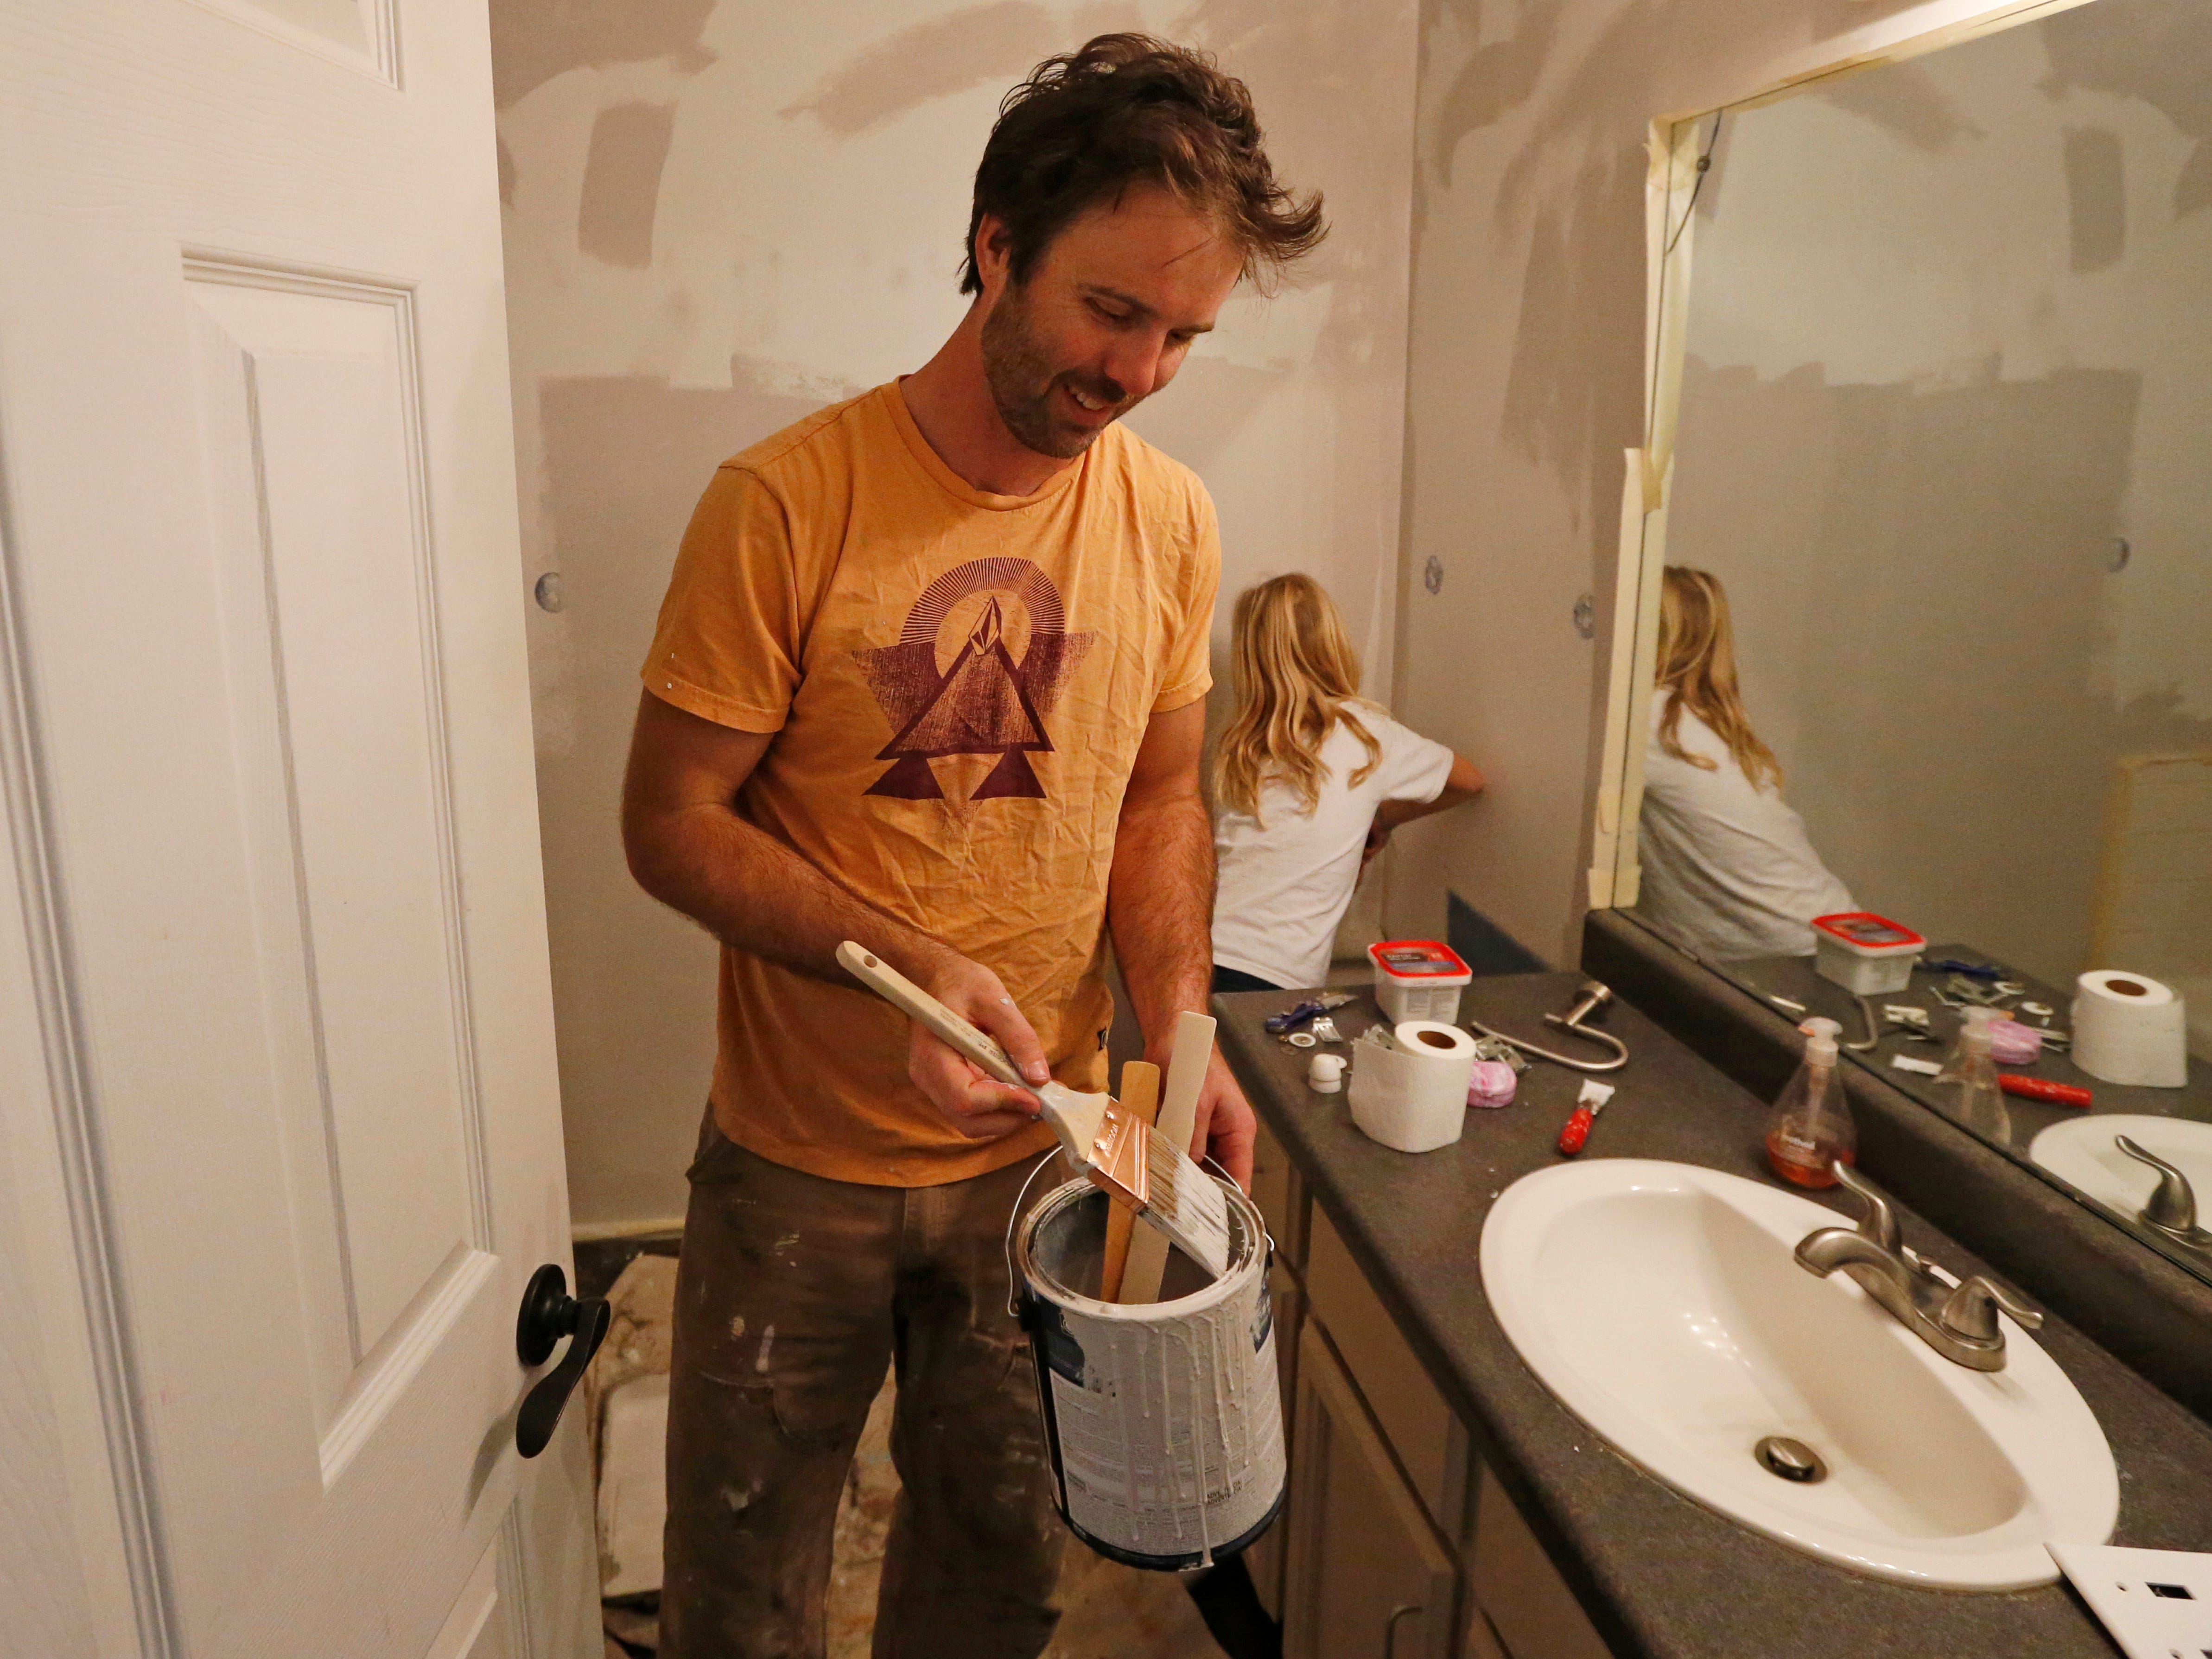 Federal contractor Chris Erickson paints his bathroom, Jan., 4, 2019, in North Salt Lake, Utah. Erickson says he'll run out of vacation days if the shutdown continues. The father of three from Salt Lake City will then crack into his savings, and he'll likely postpone a 14th wedding anniversary trip with his wife to a cabin. Erickson said he likely won't get the chance for reimbursement for the lost days because he's a contractor.